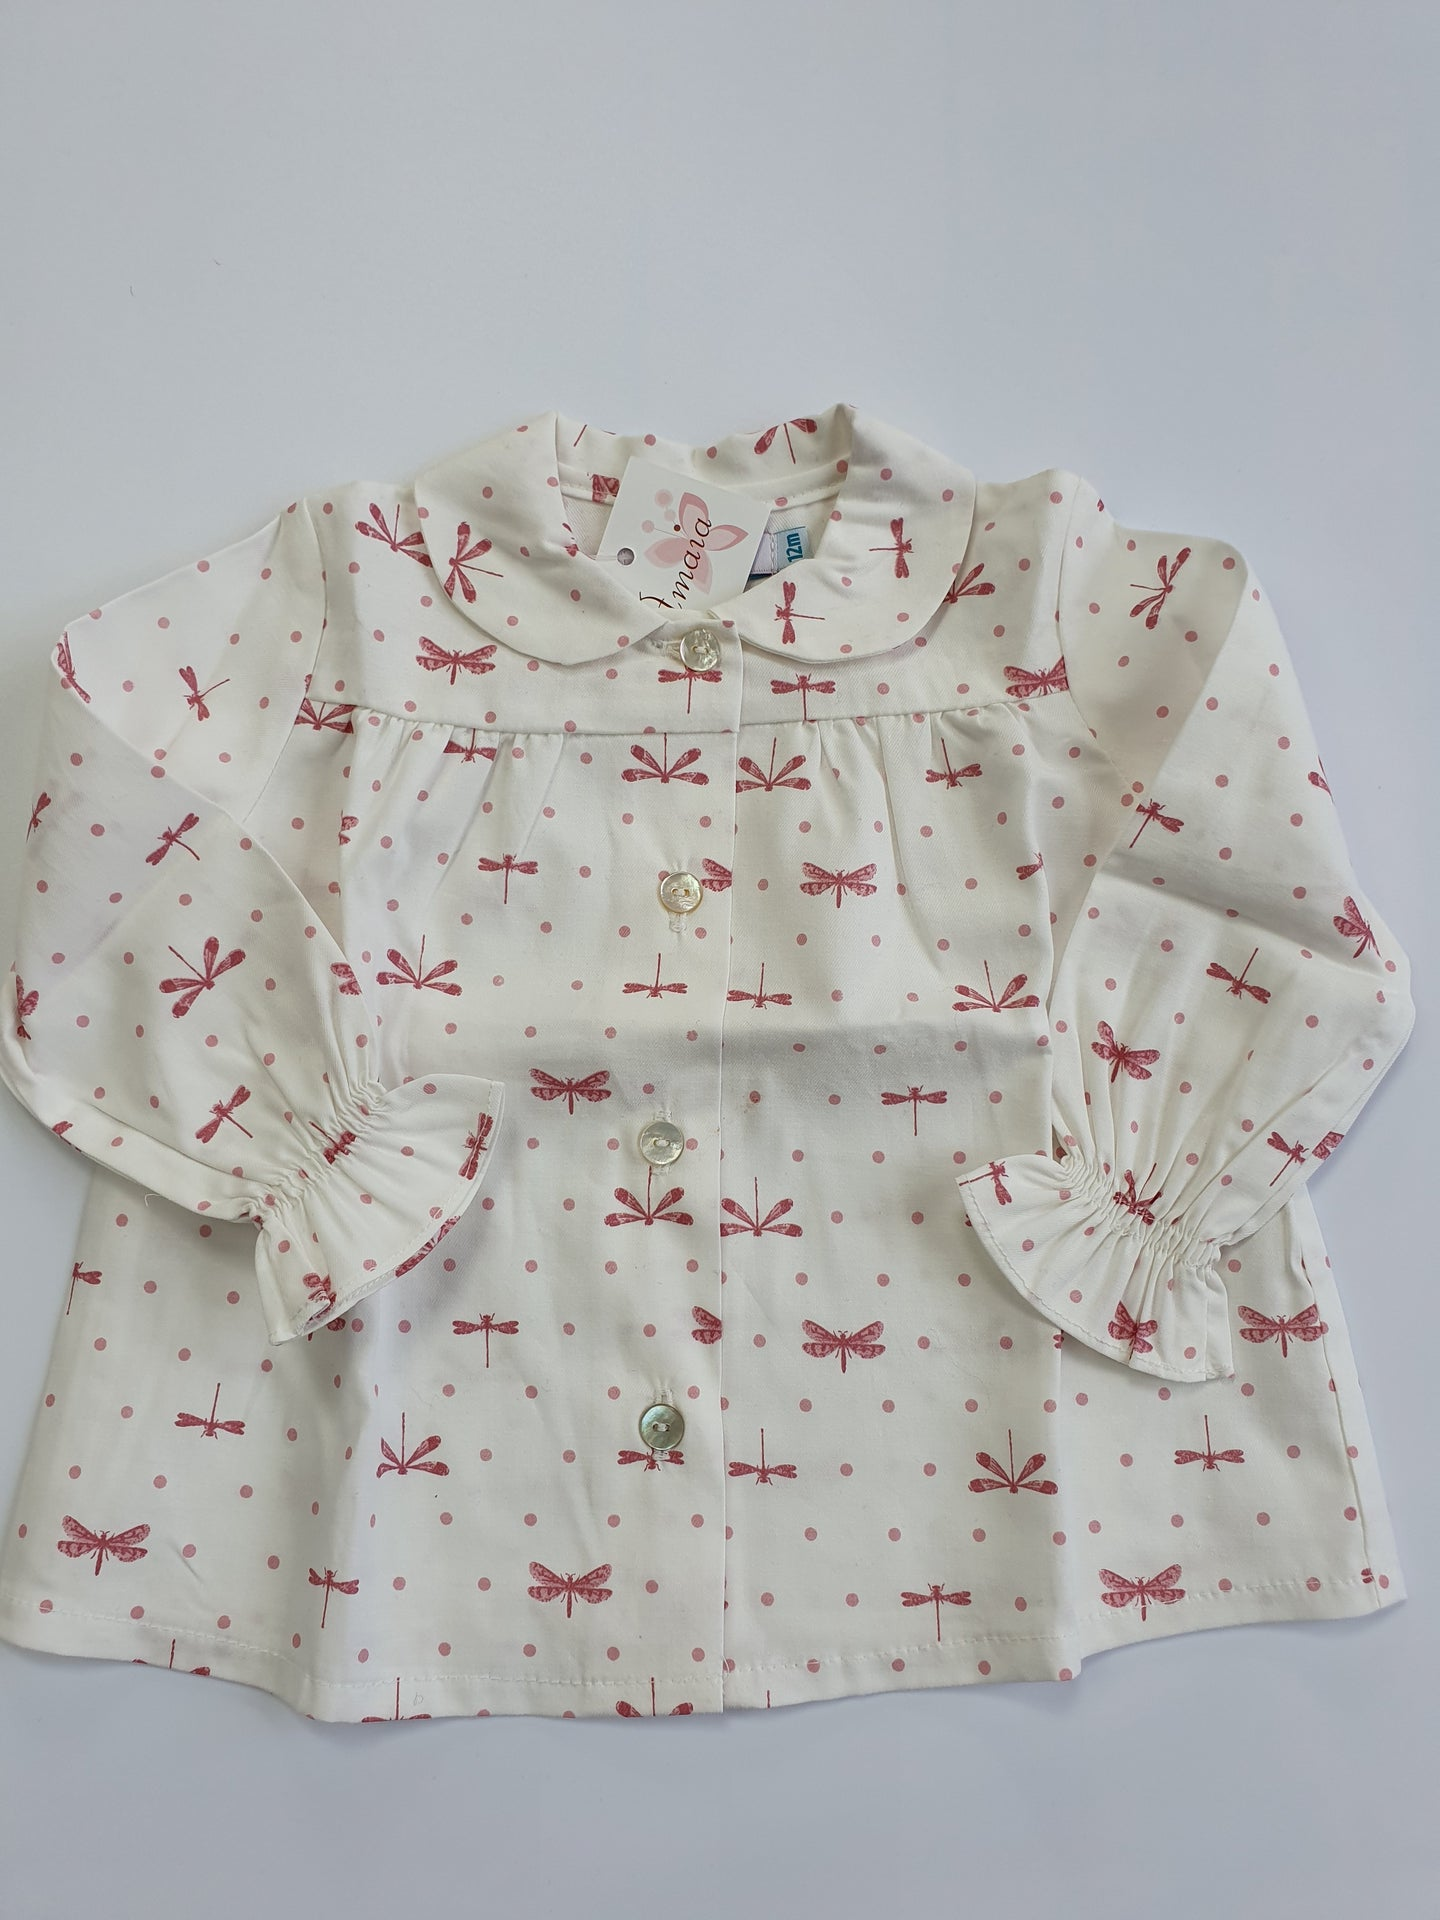 AMAIA outlet baby blouse 12m - FAMILY AFFAIRE